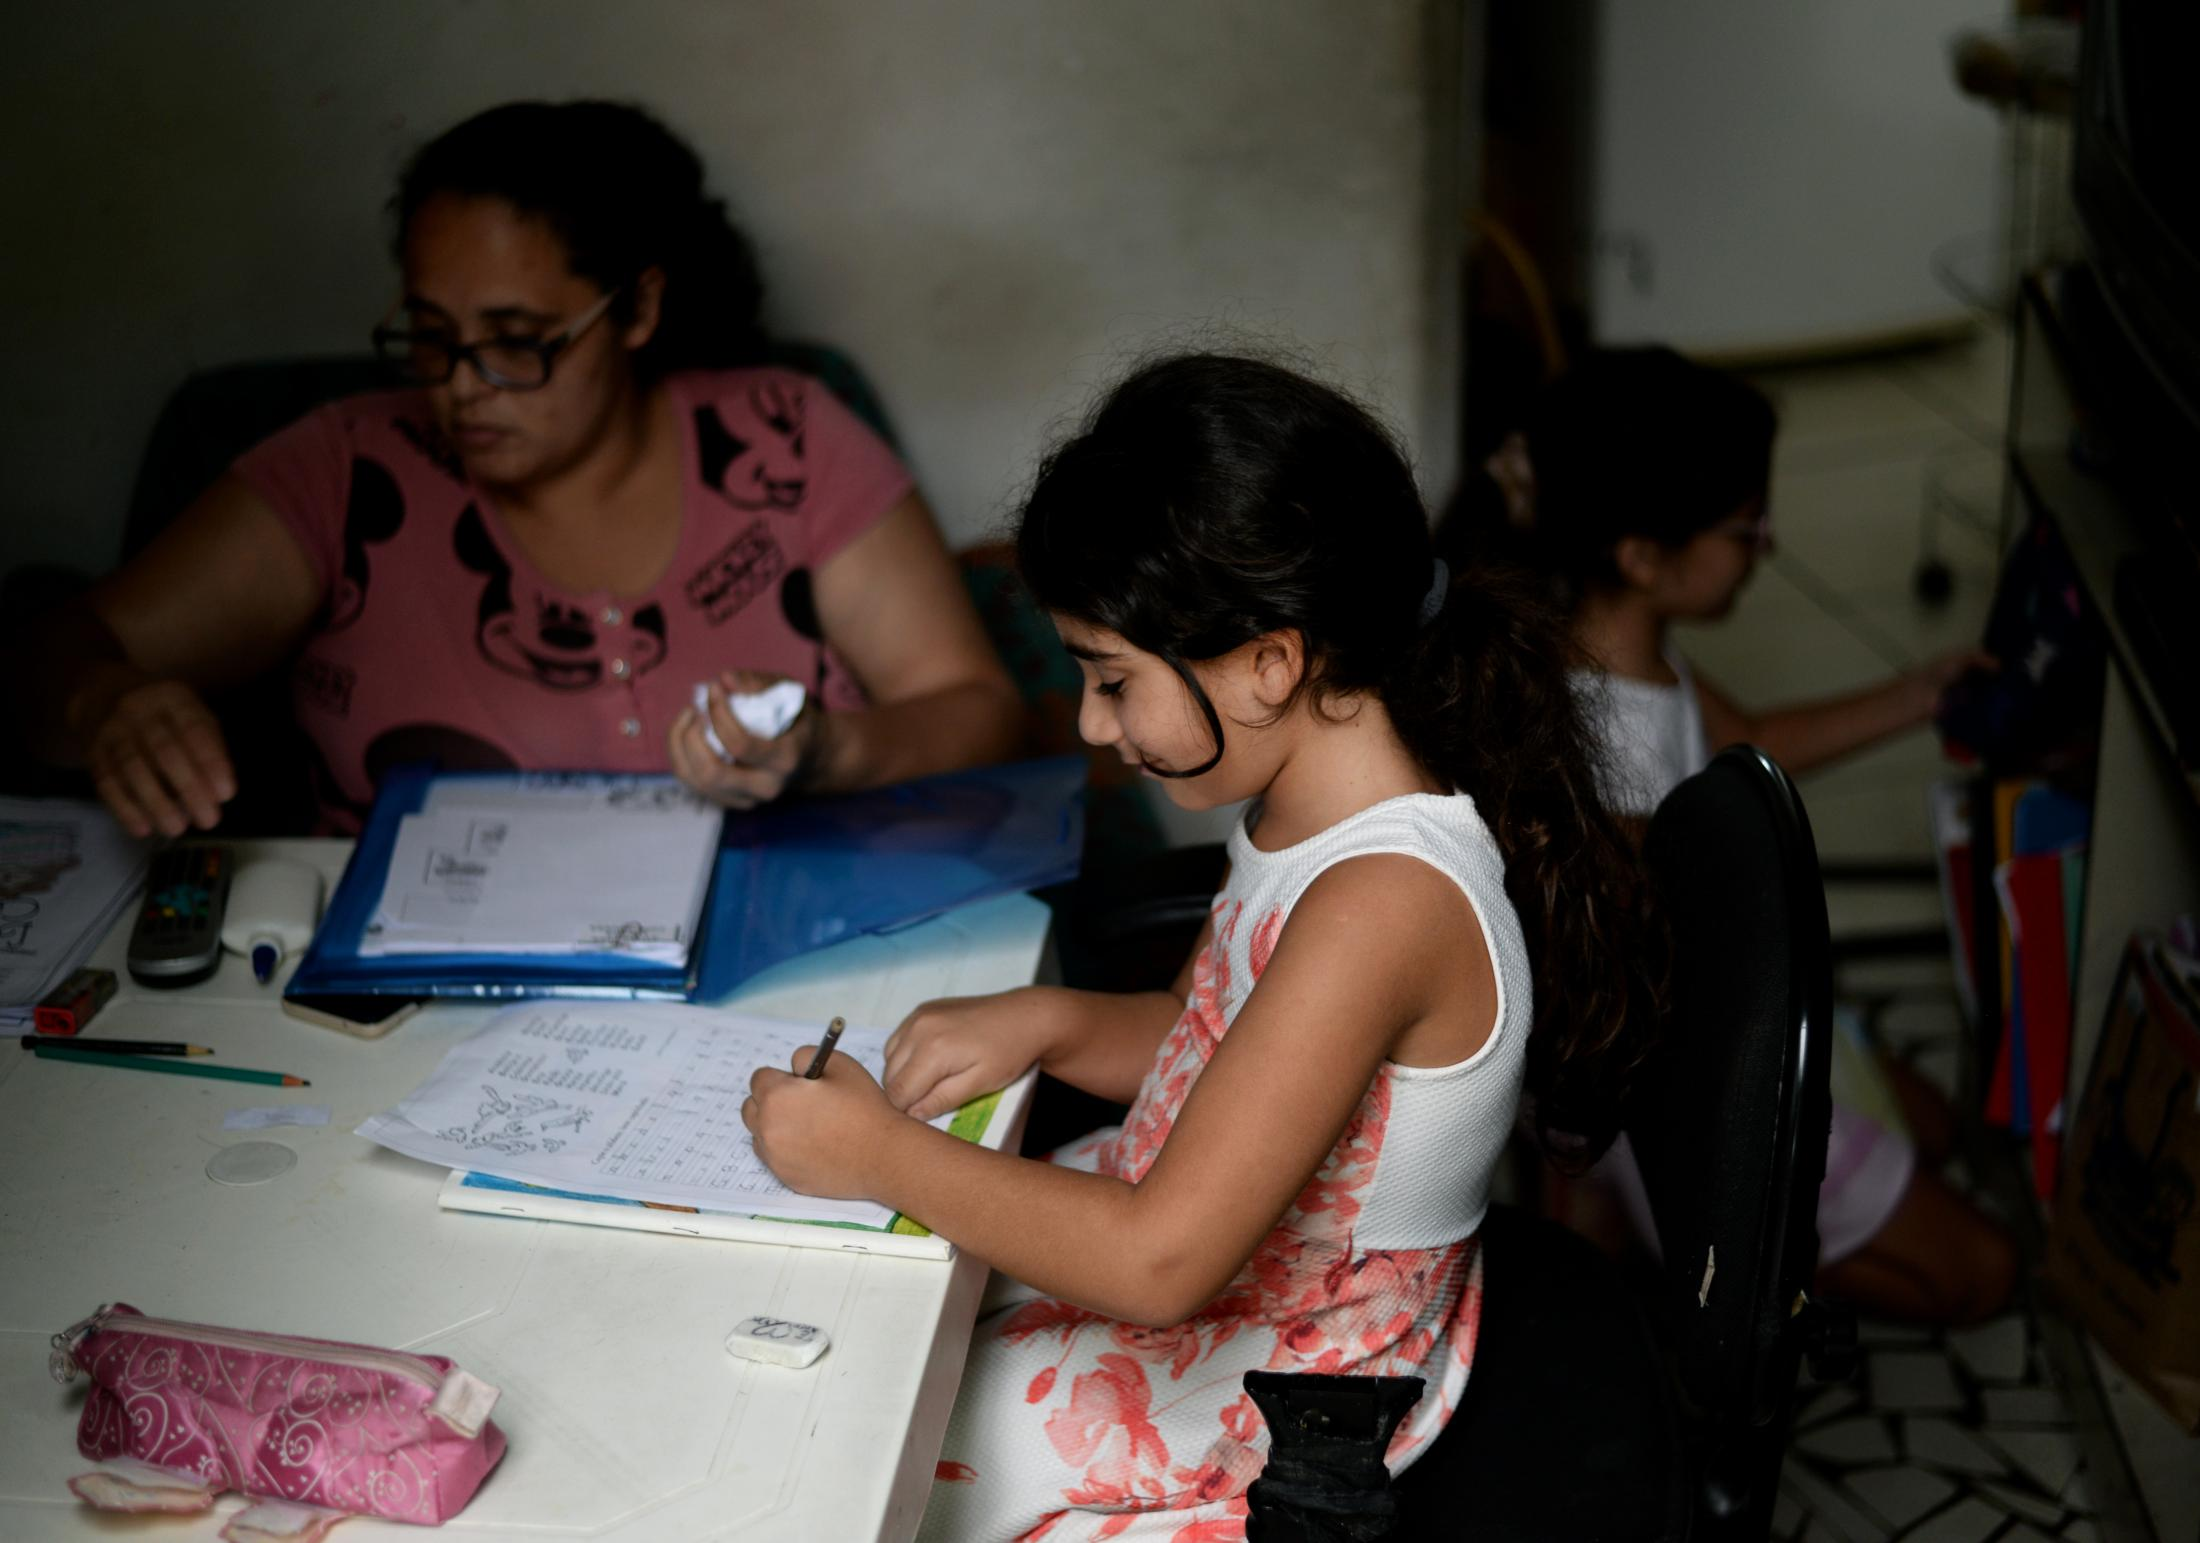 Celin Ibrahim, 7, center, finishes her daily homework while her teacher Carina Aparecida Rosa, left, and her sister Lamar organize their materials on Thursday, Dec. 10, 2020, in Santo Andre, Sao Paulo State, Brazil. Rosa helps by taking care of the sisters while their mother is at work. Rosa says that the girls are obedient when doing their schoolwork.